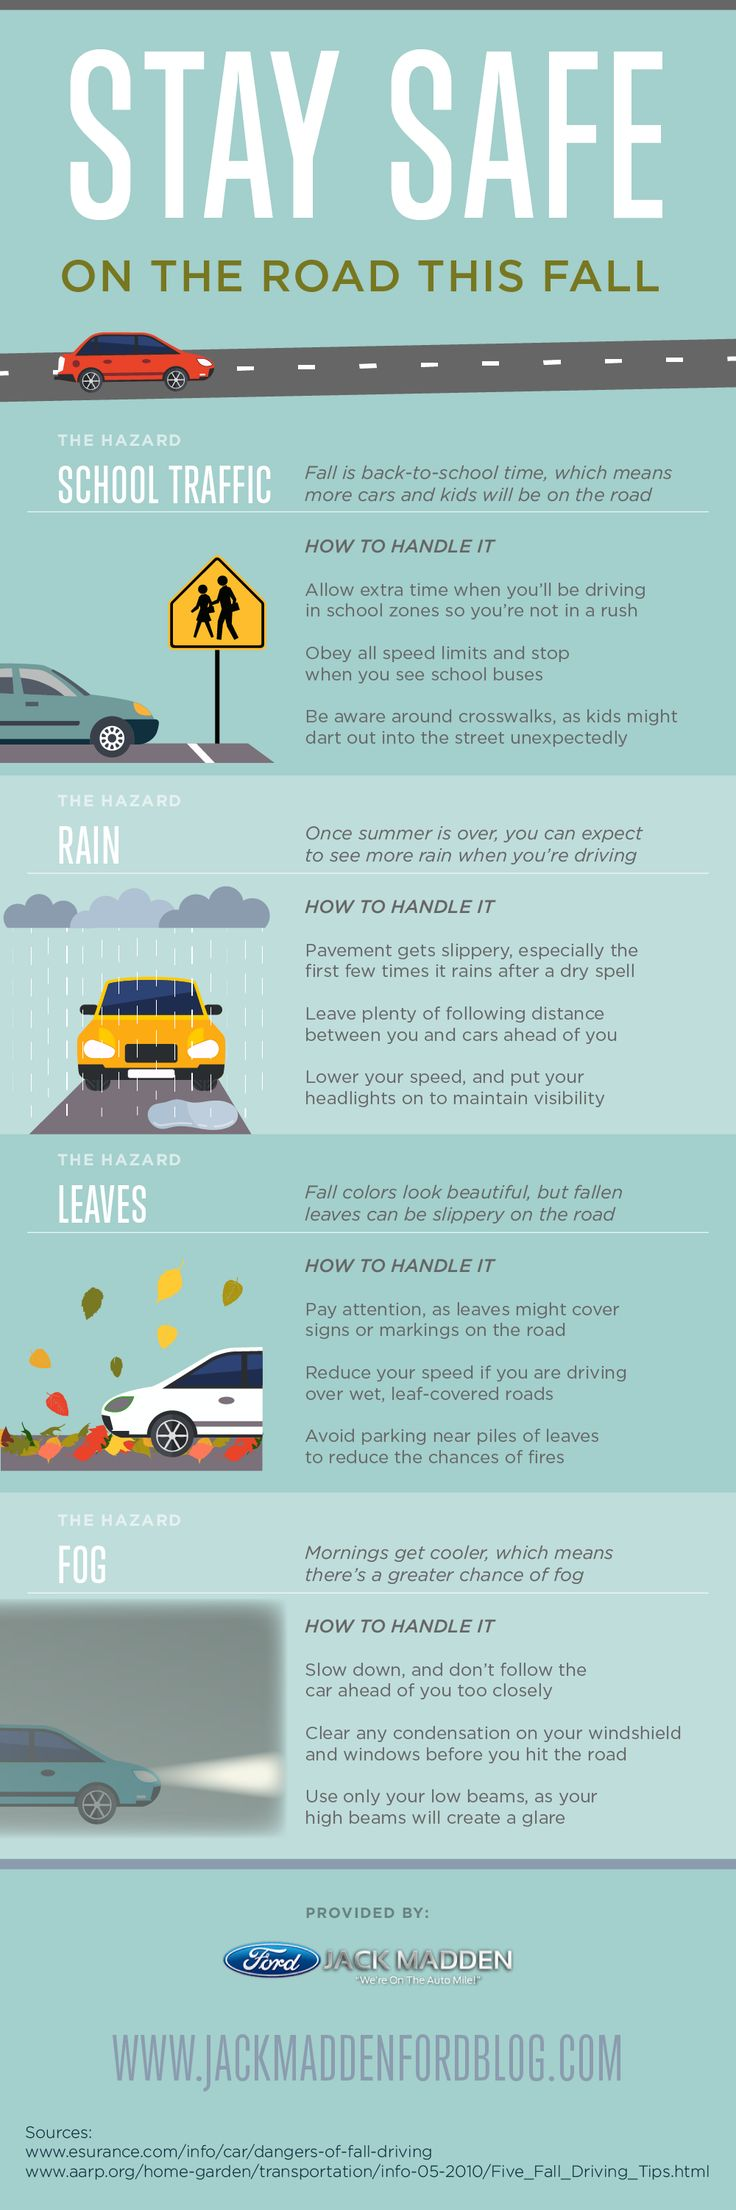 Car colour affects road safety - Stay Safe On The Road This Fall